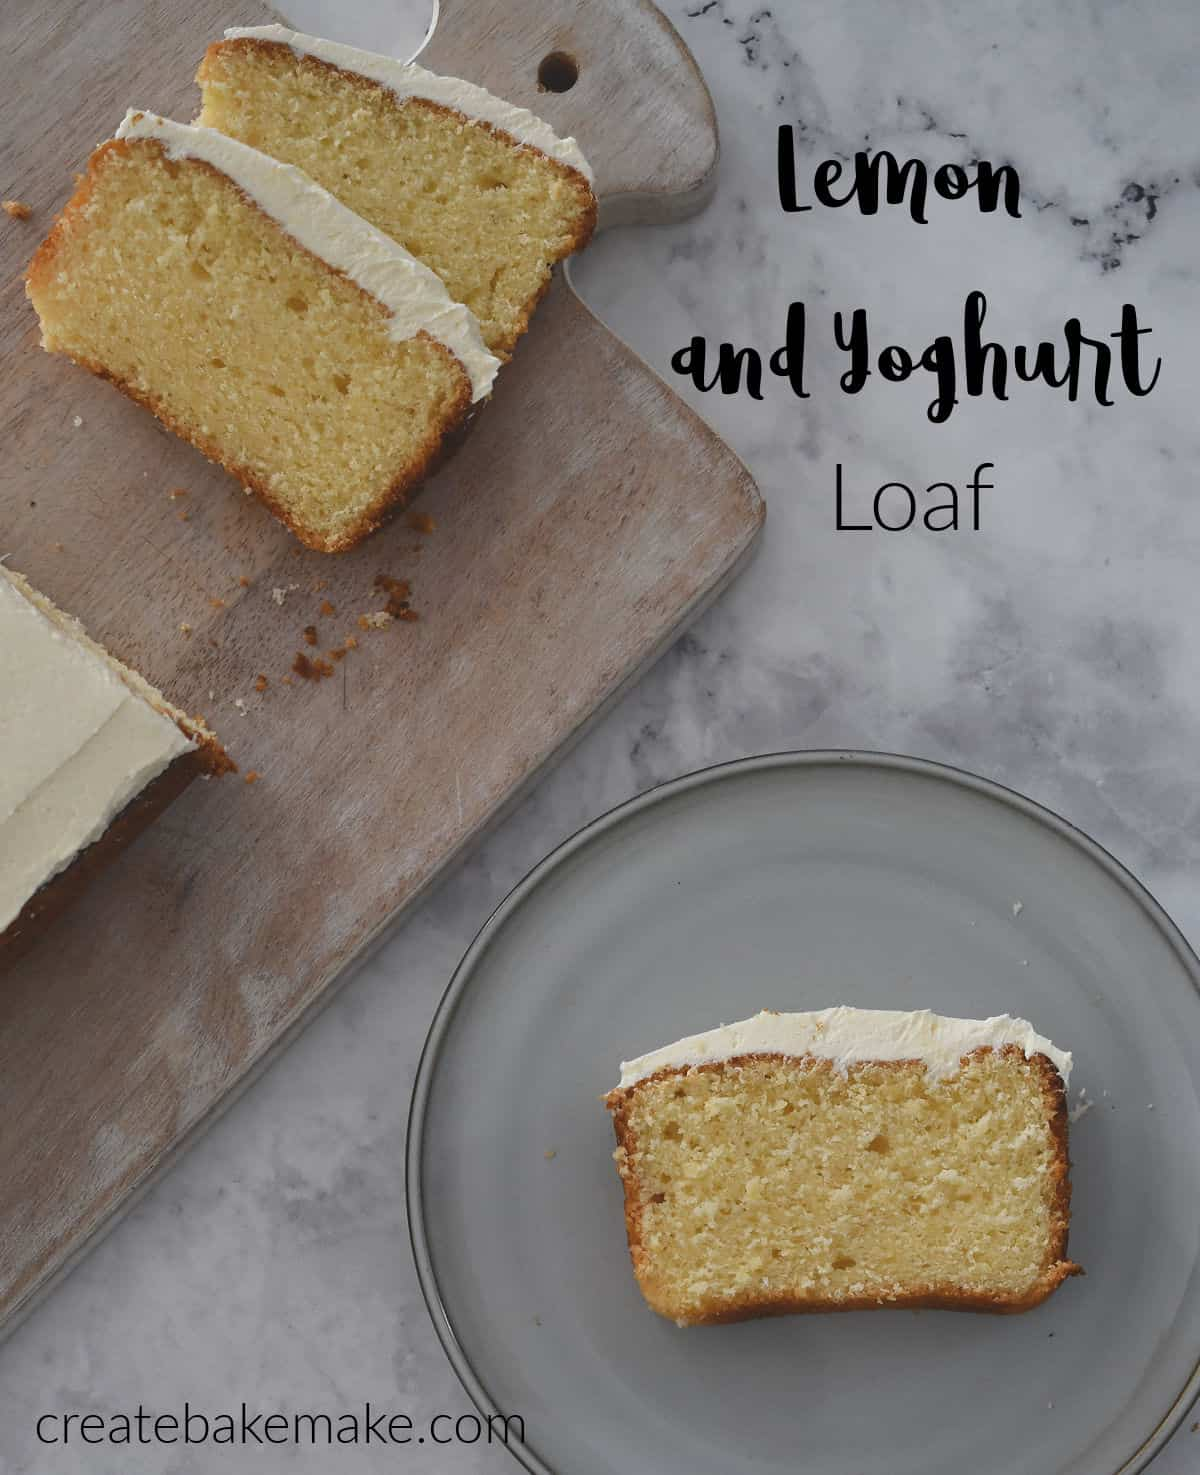 Overhead view of Lemon and Yoghurt Loaf Sliced and on a plate.